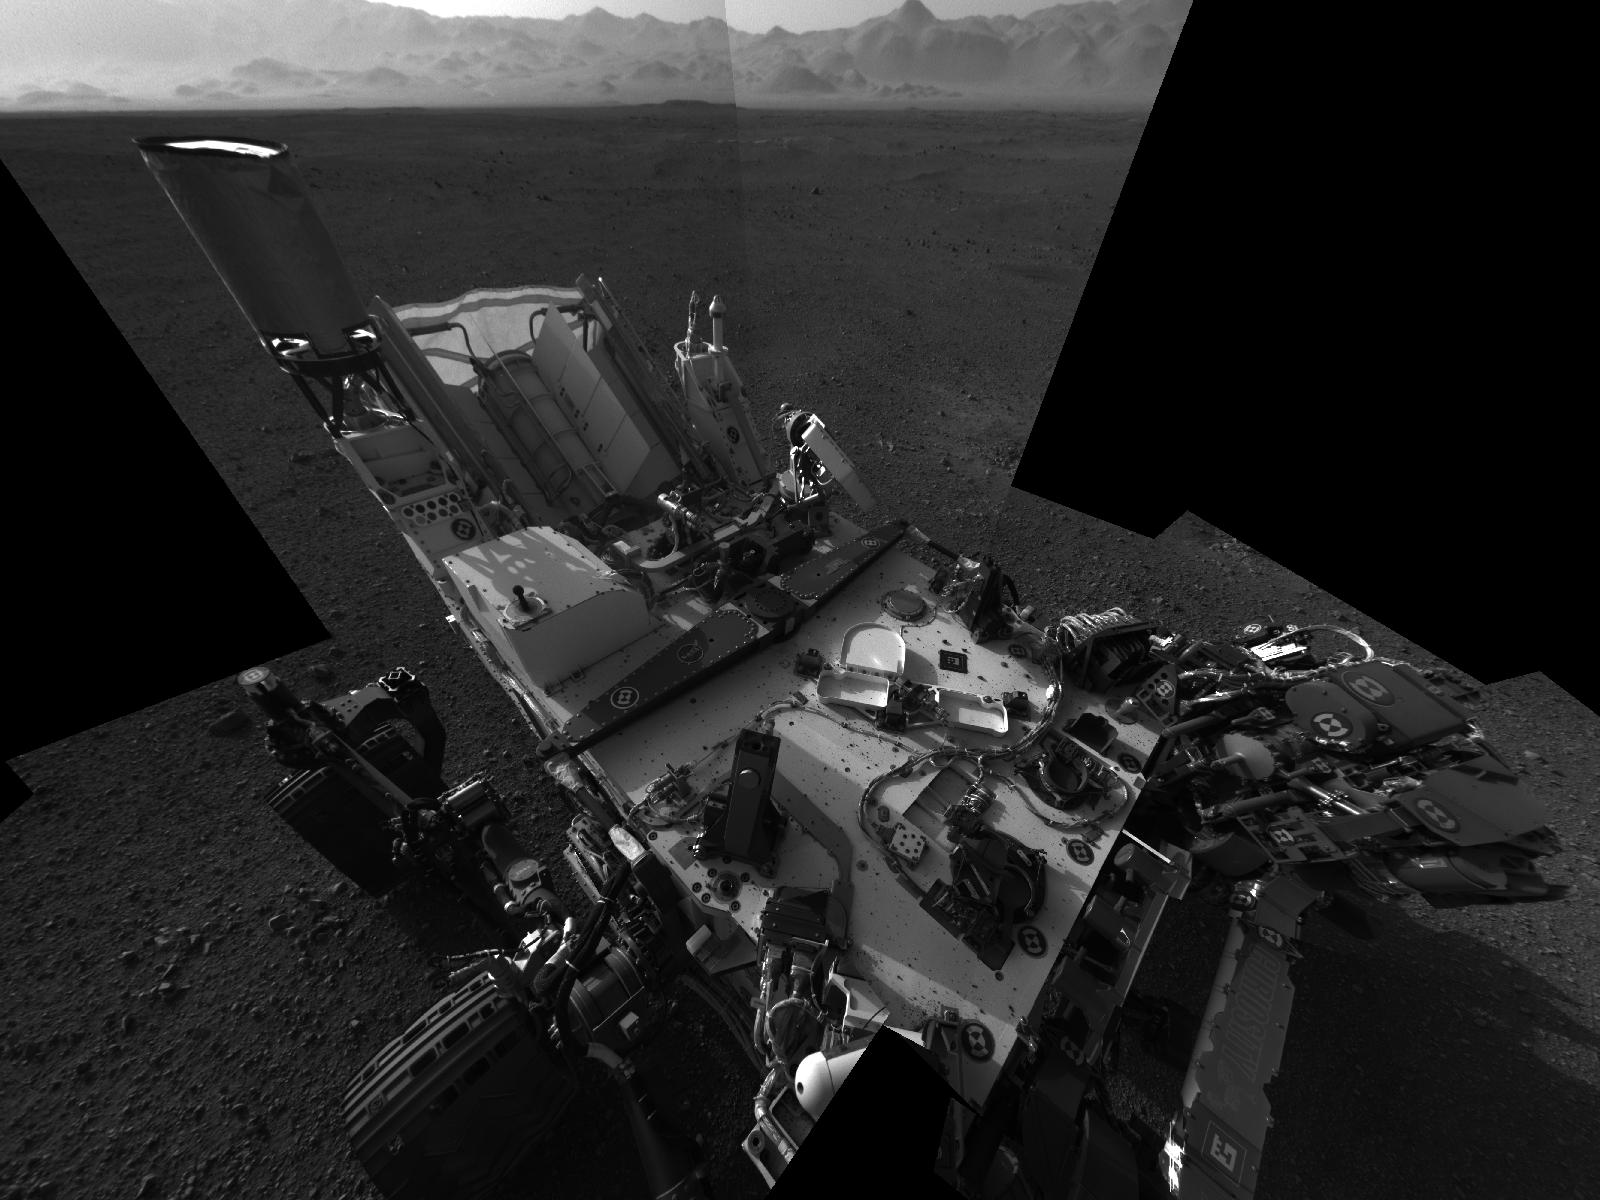 Mars Rover Curiosity to Take 1st Martian Drive This Week